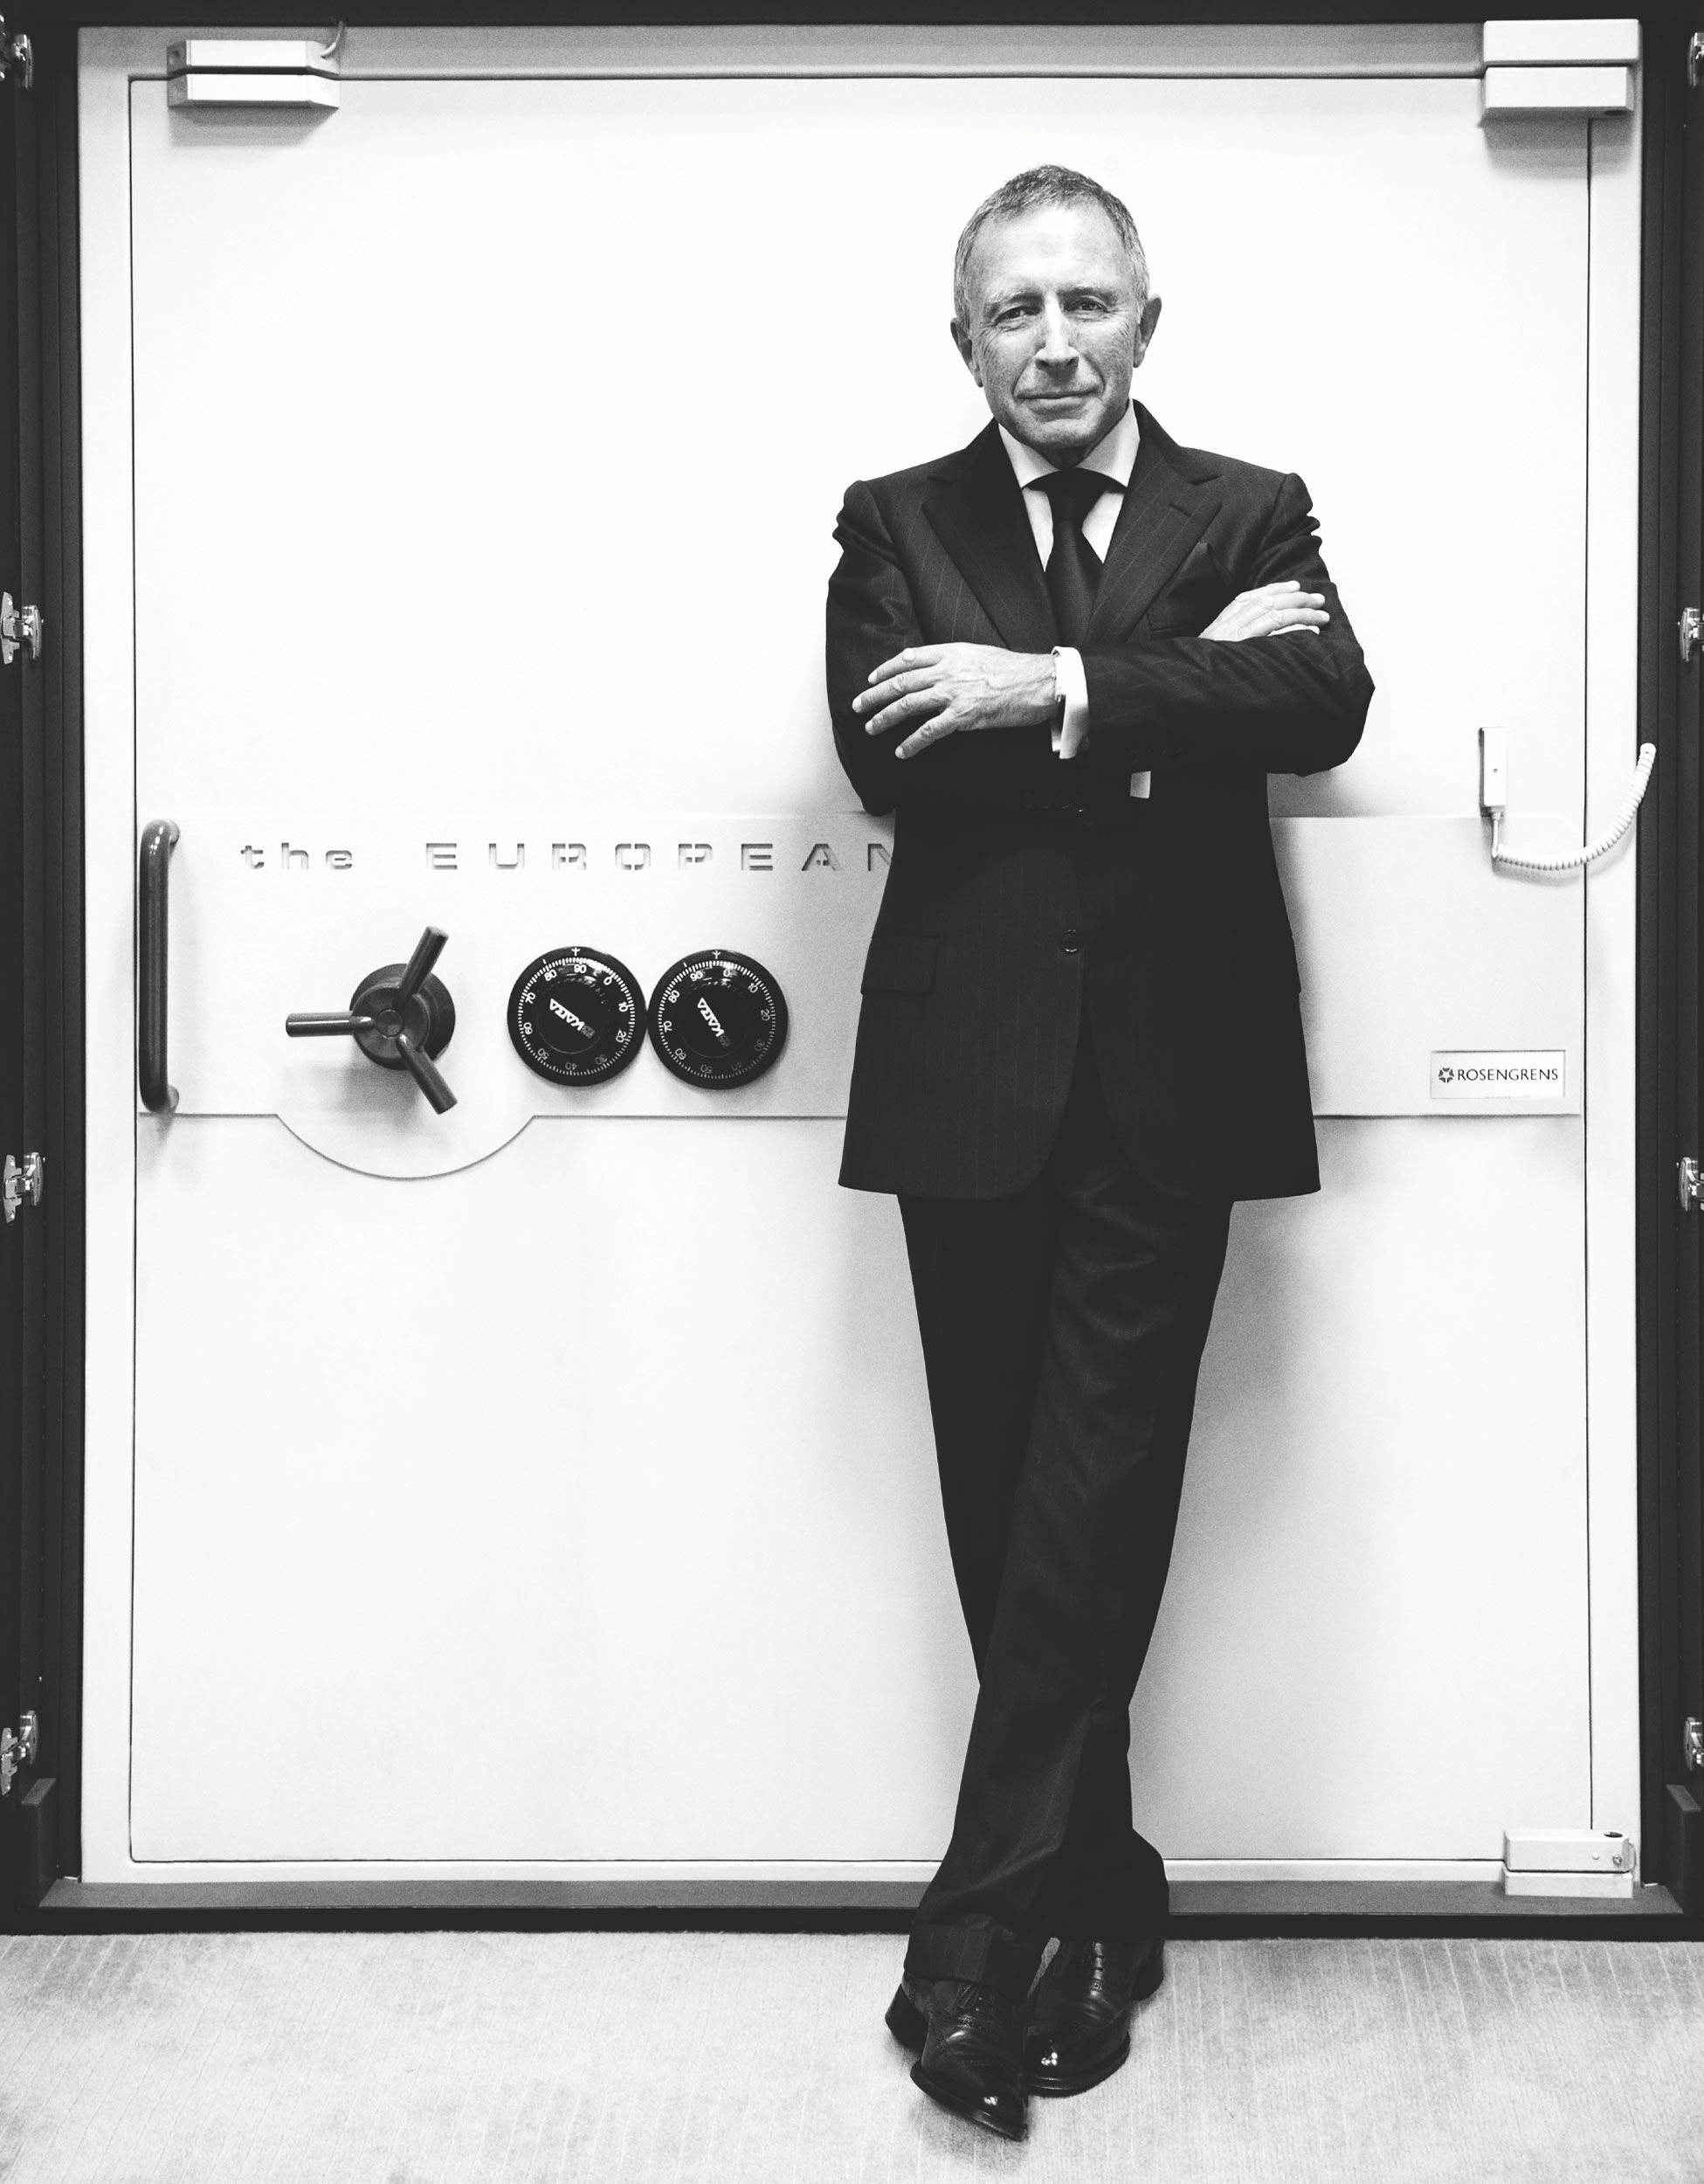 Mr Laurence Graff stands in front of a vault